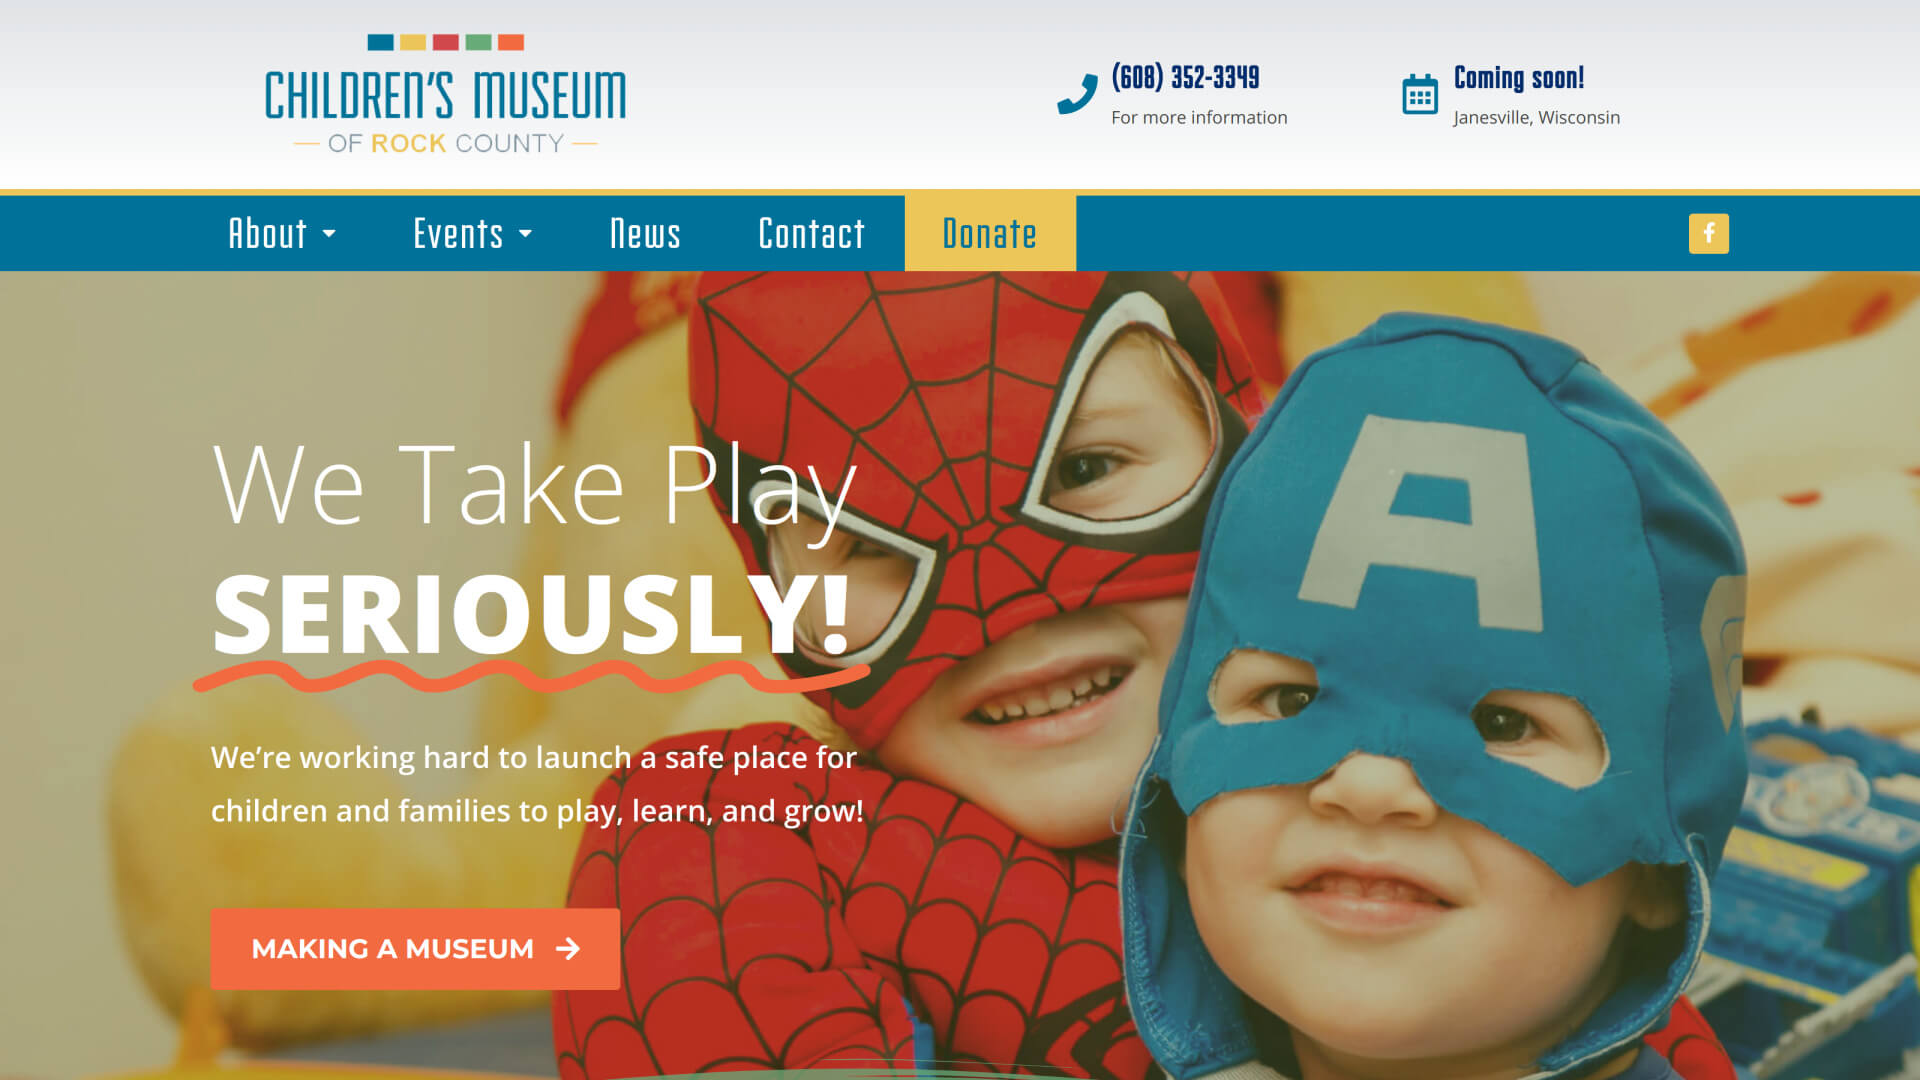 Screenshot of Children's Museum of Rock County homepage from March 27, 2020